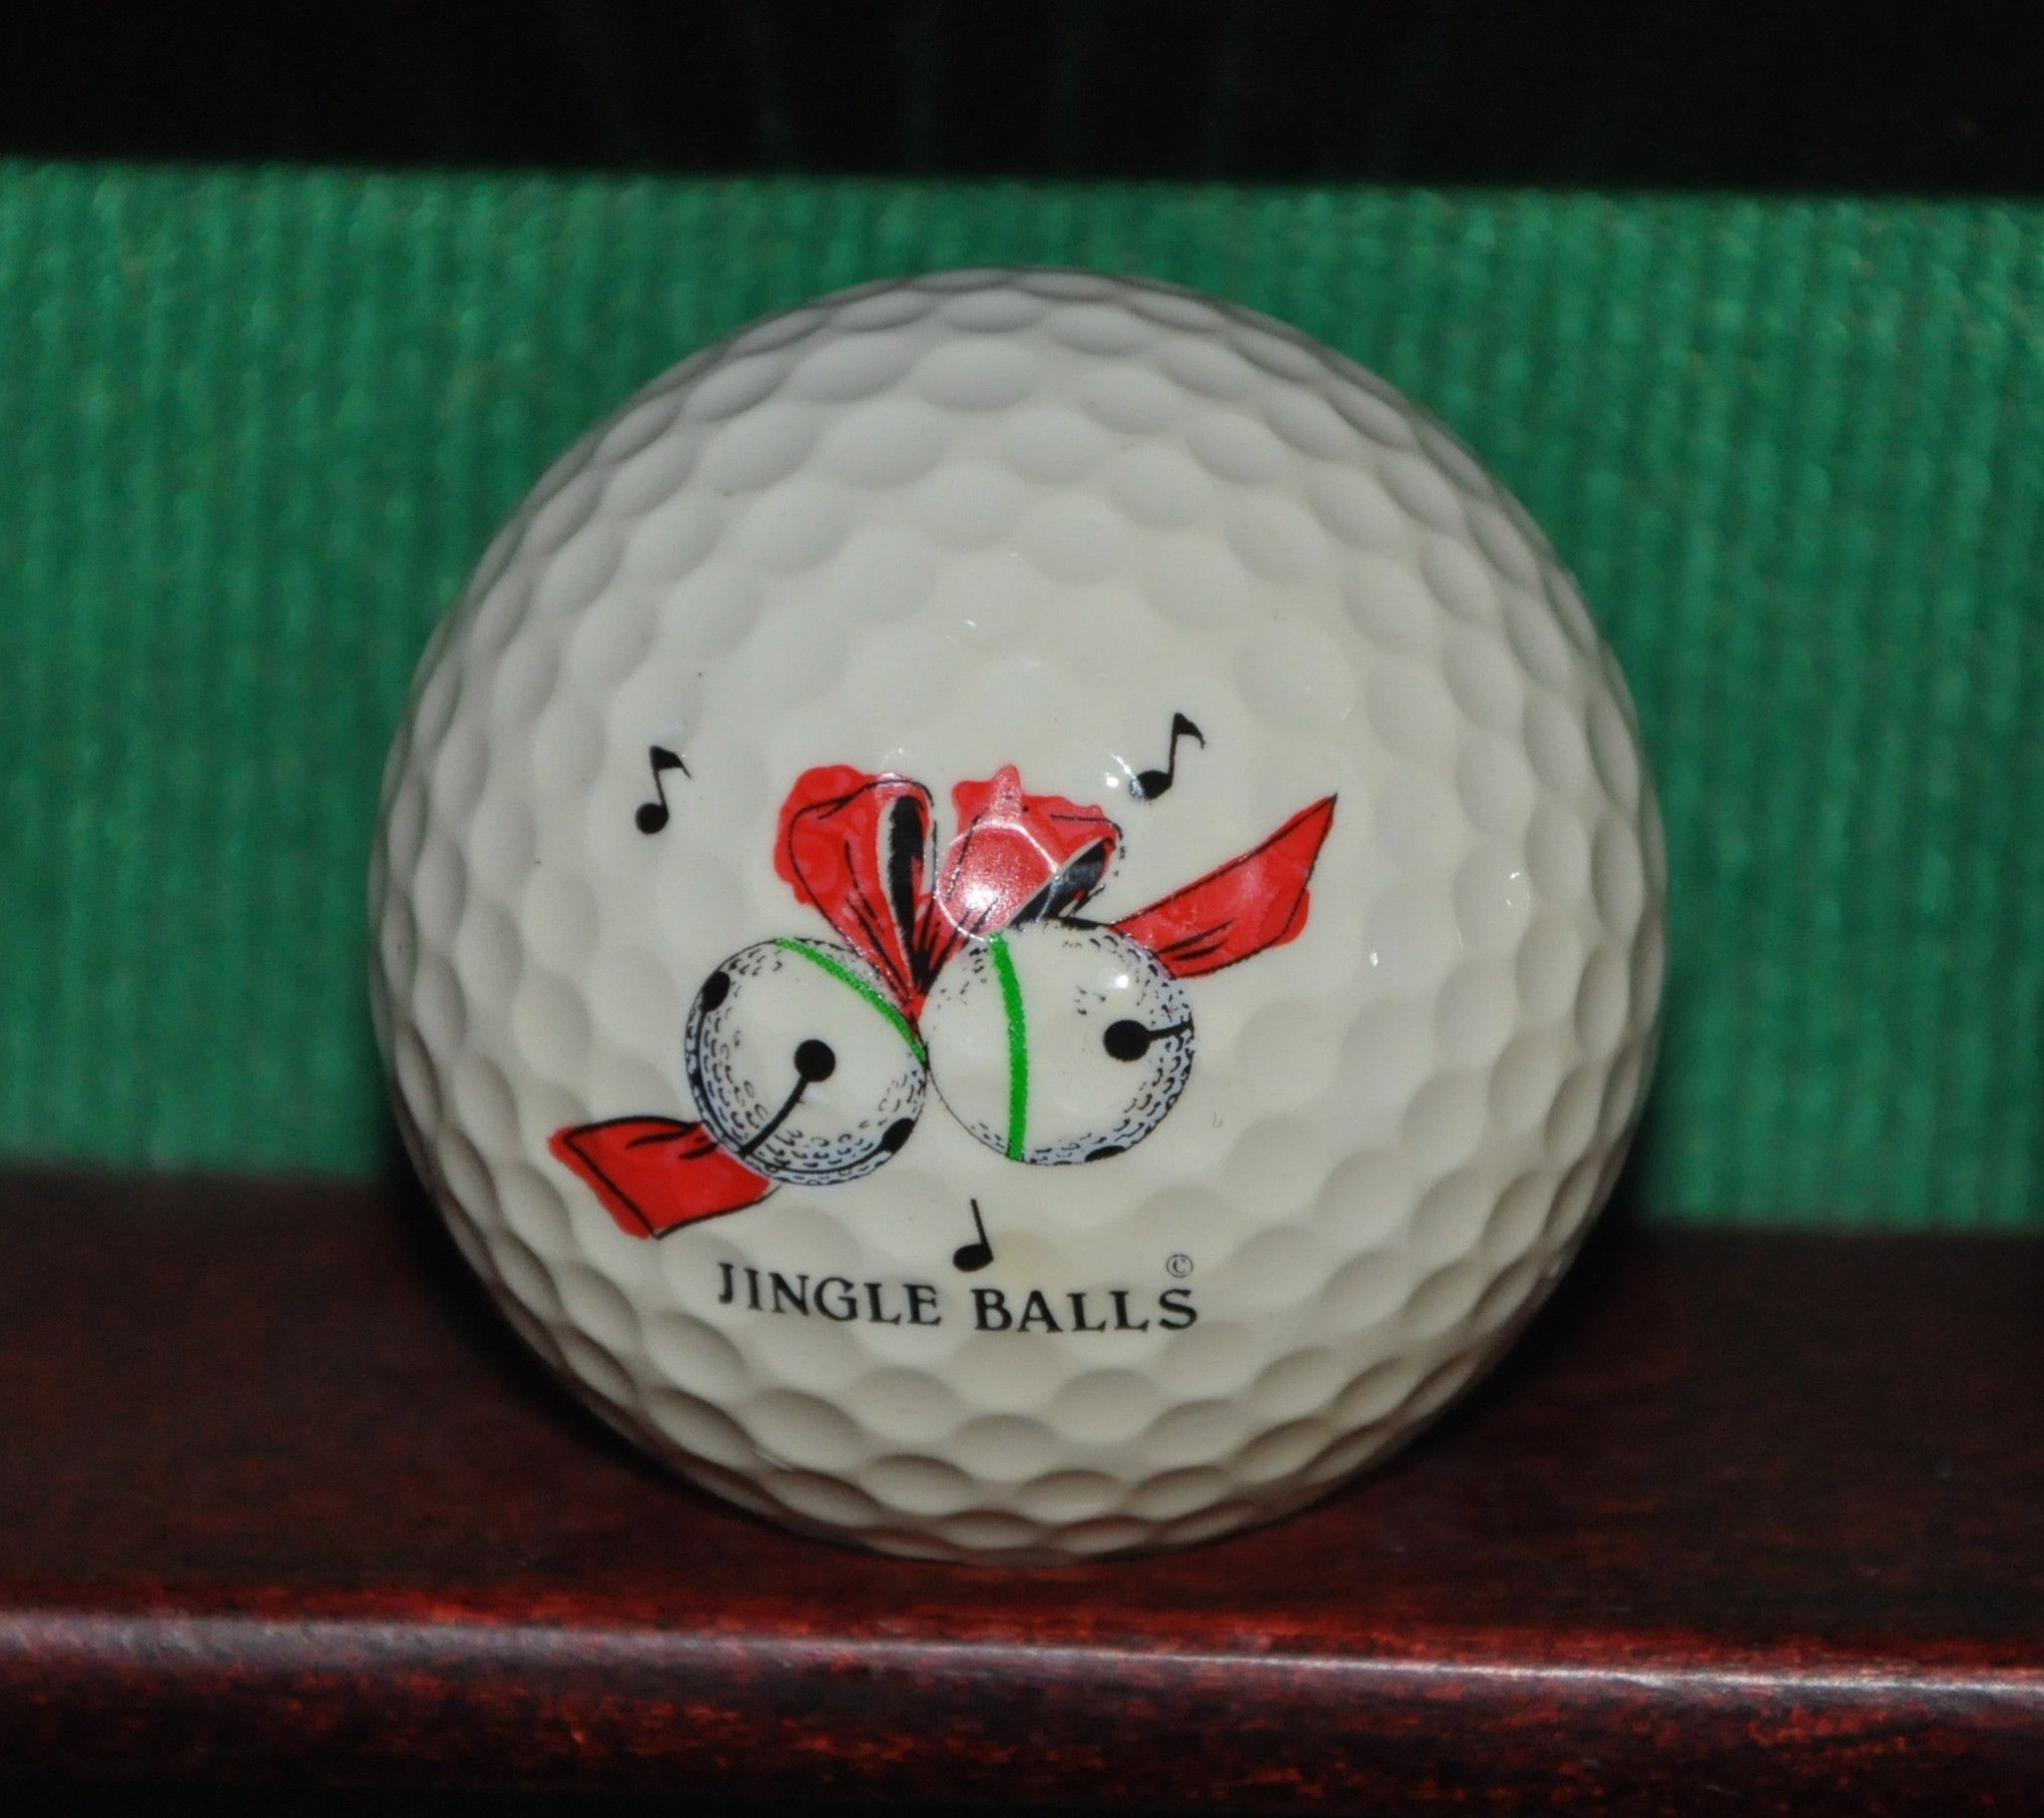 Jingle Balls Festive Christmas Logo Golf Ball Ball is in very good condition with light evidence of play (pictured). The ball pictured is the ball for sale.